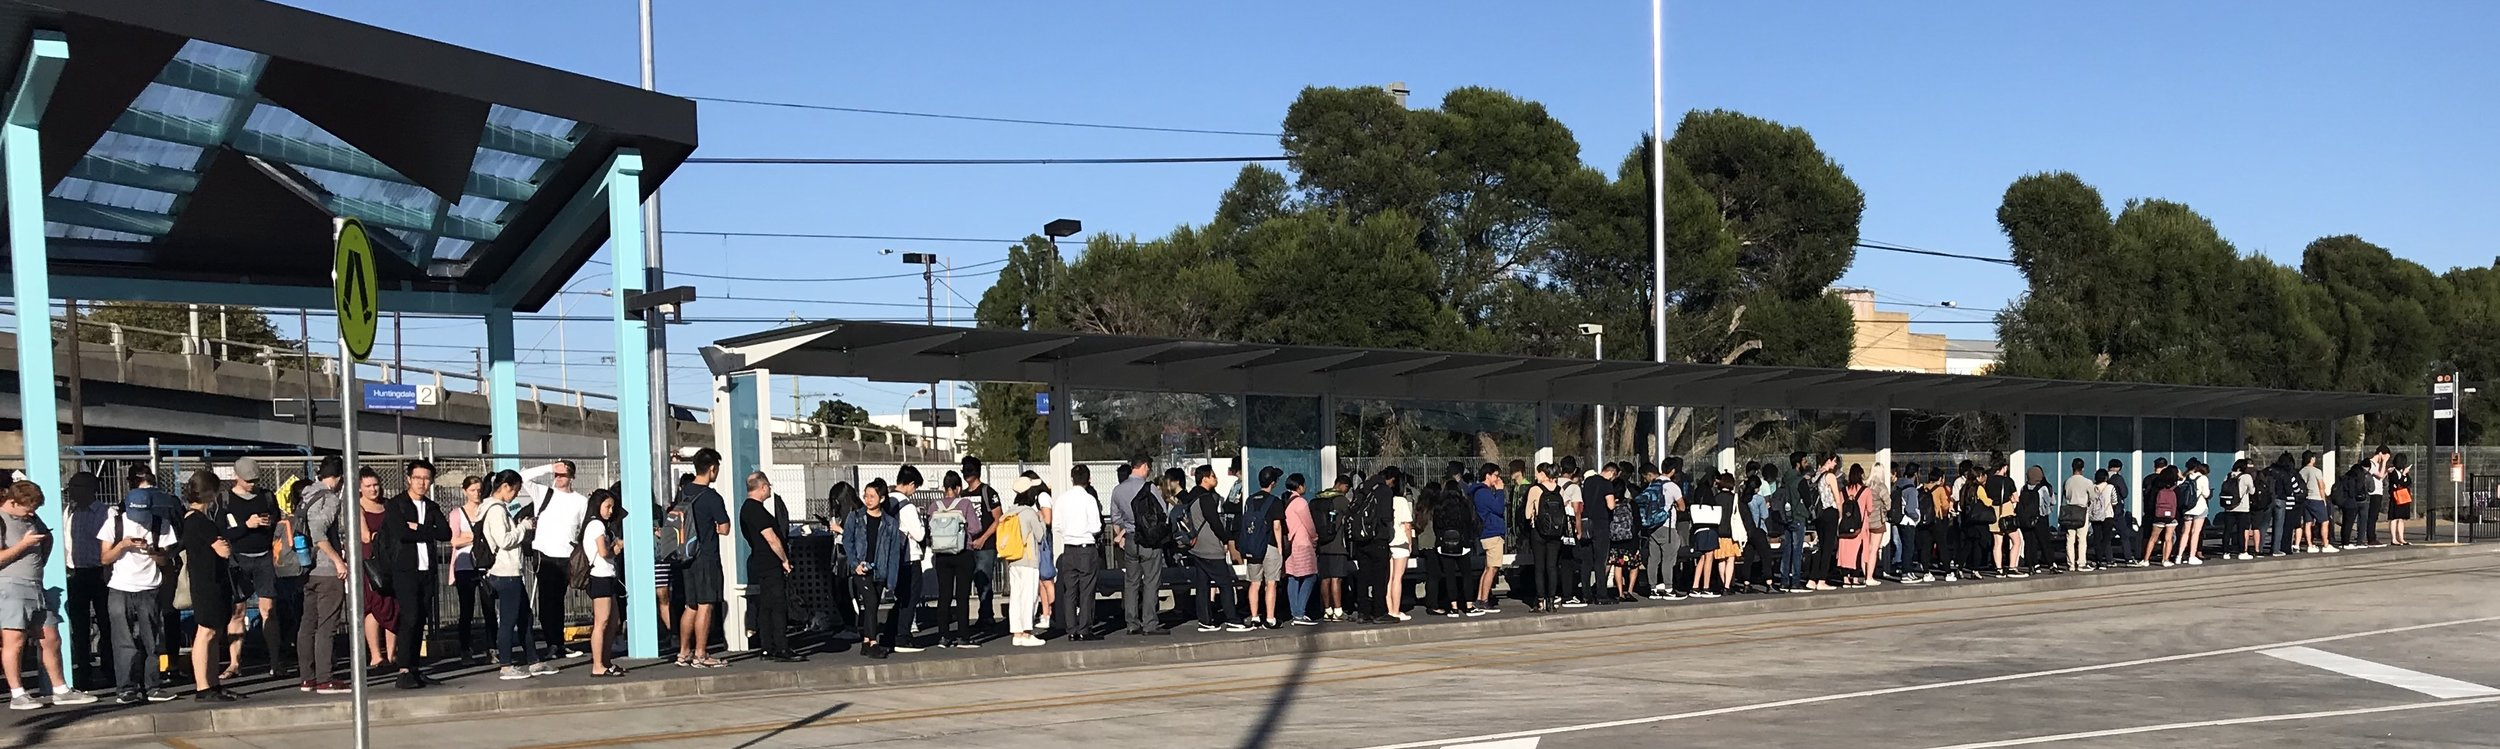 Around four busloads of passengers (the line had doubled back, and stretches out of frame) await the  601 Monash Express Shuttle .